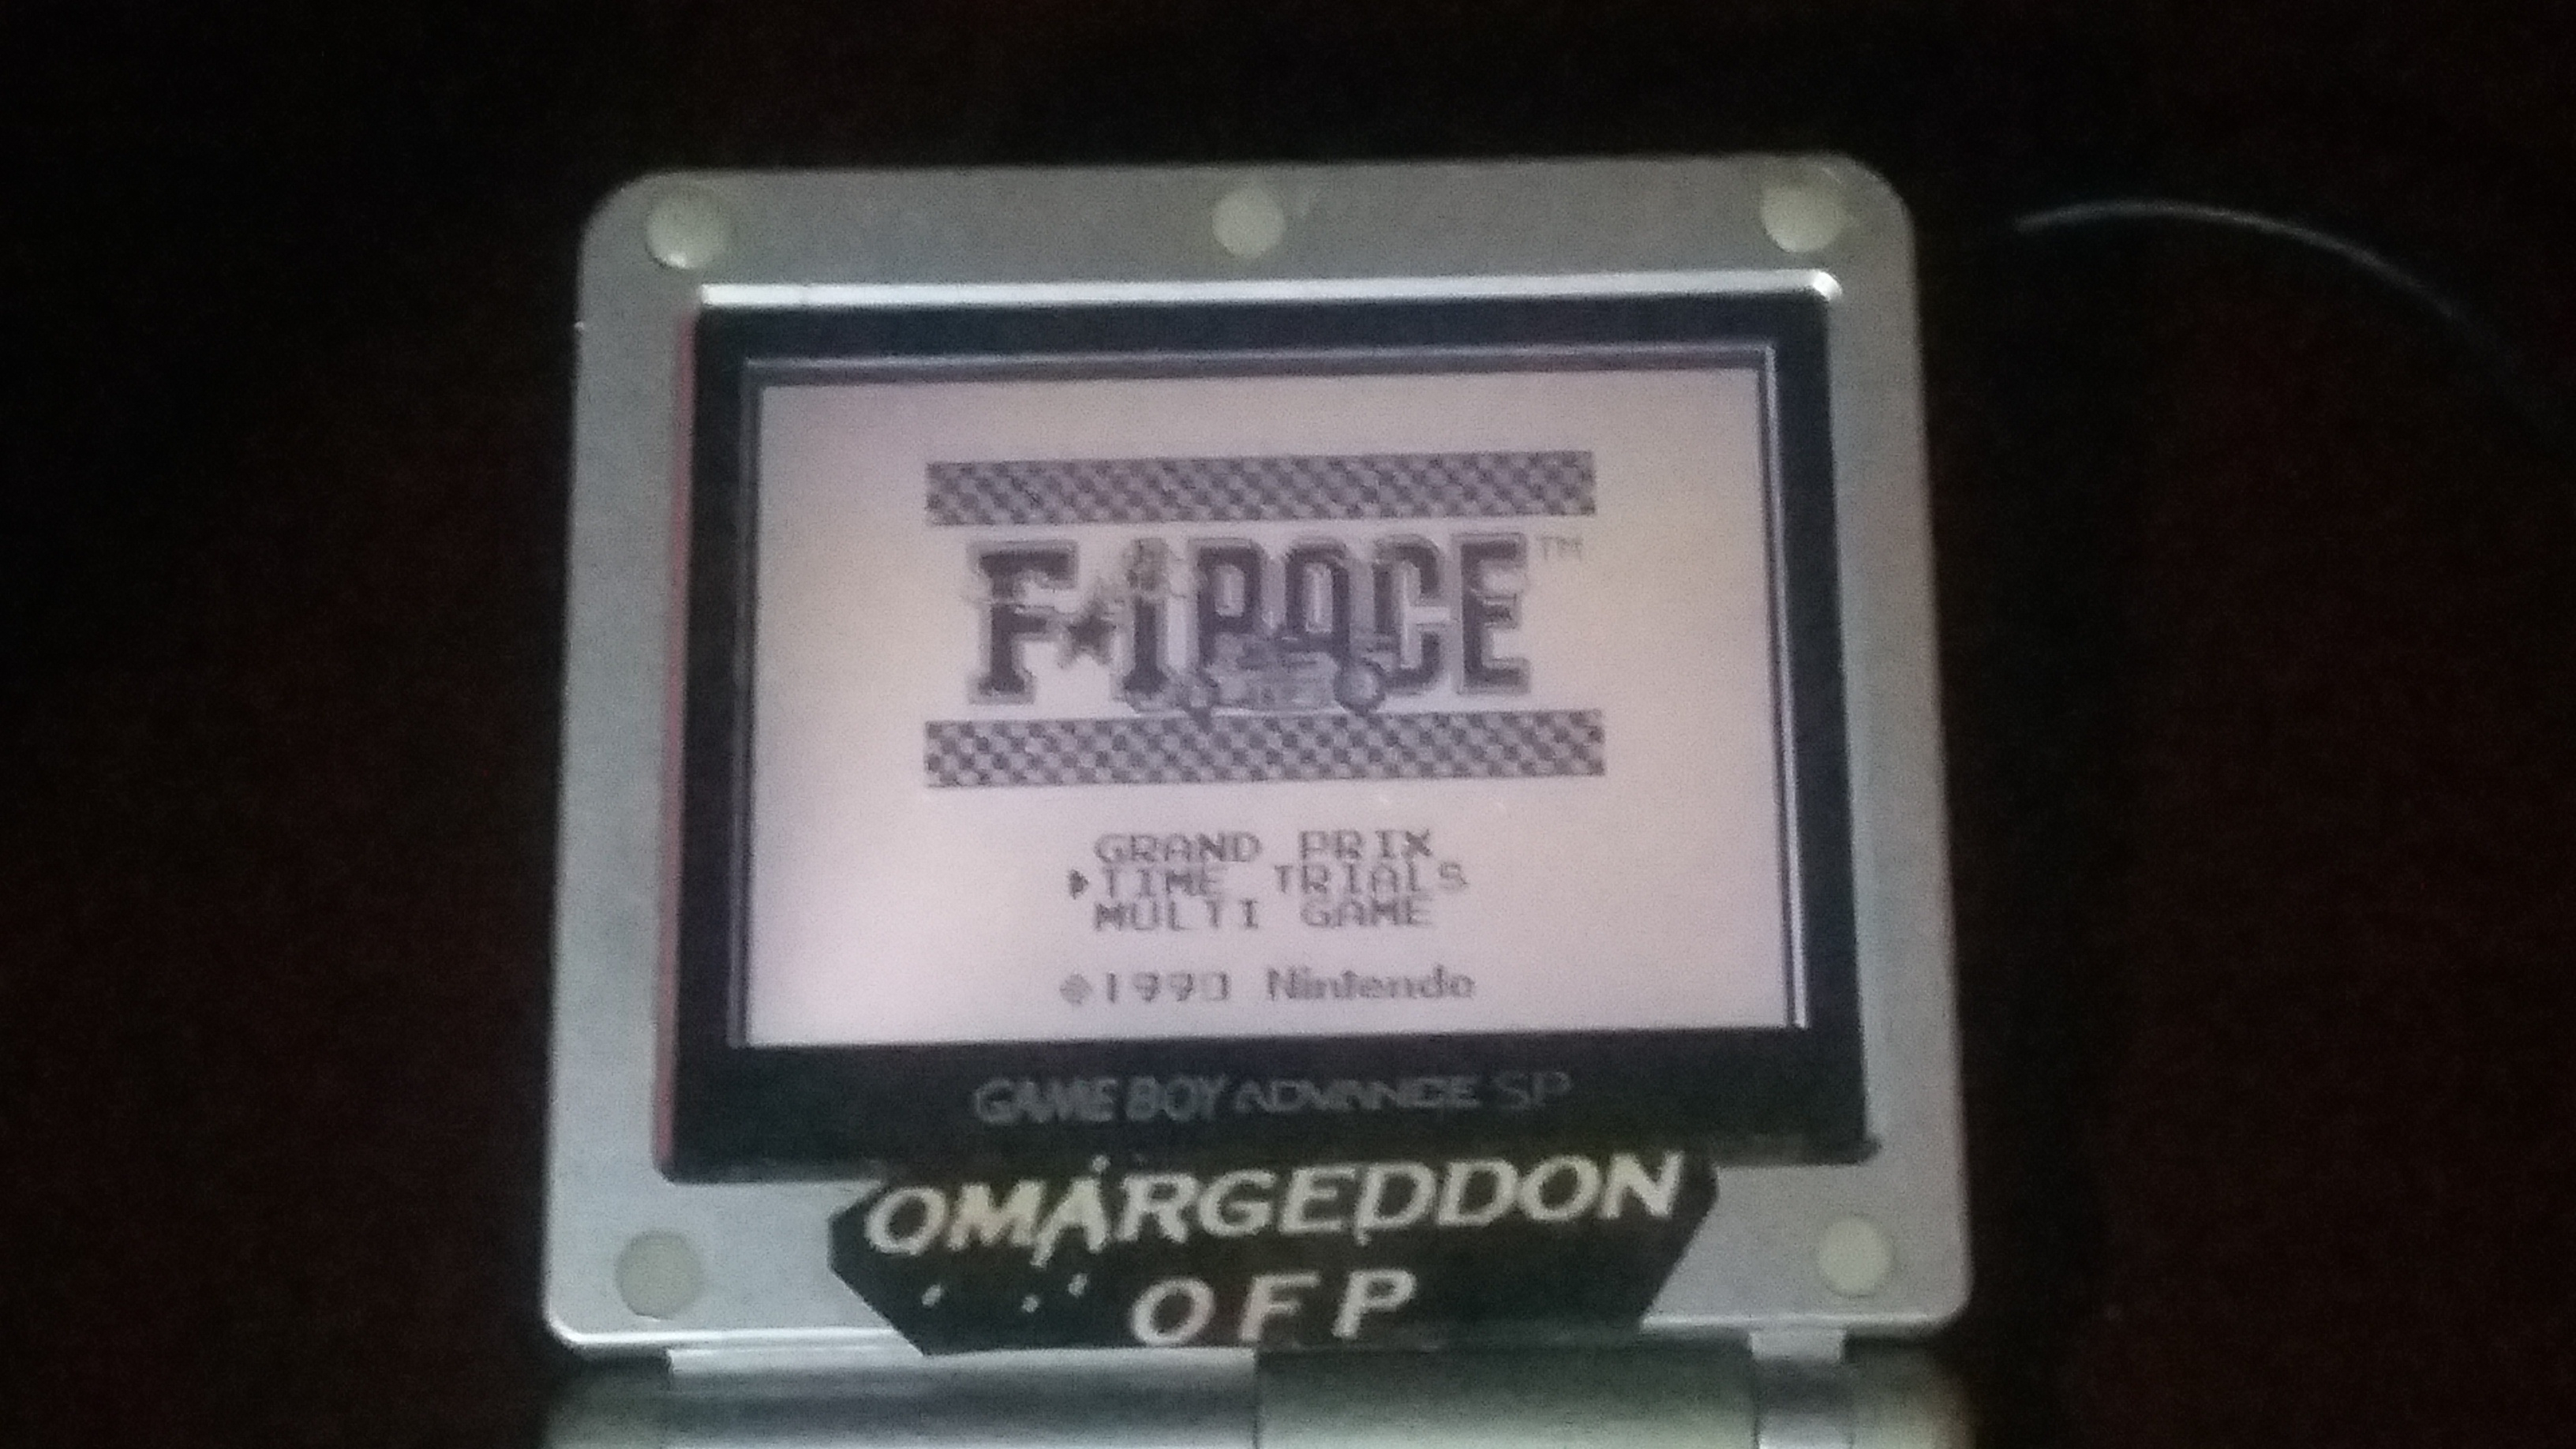 omargeddon: F-1 Race: Time Trials: Single: Japan [Best Lap] (Game Boy) 0:00:58.14 points on 2018-09-23 16:19:51